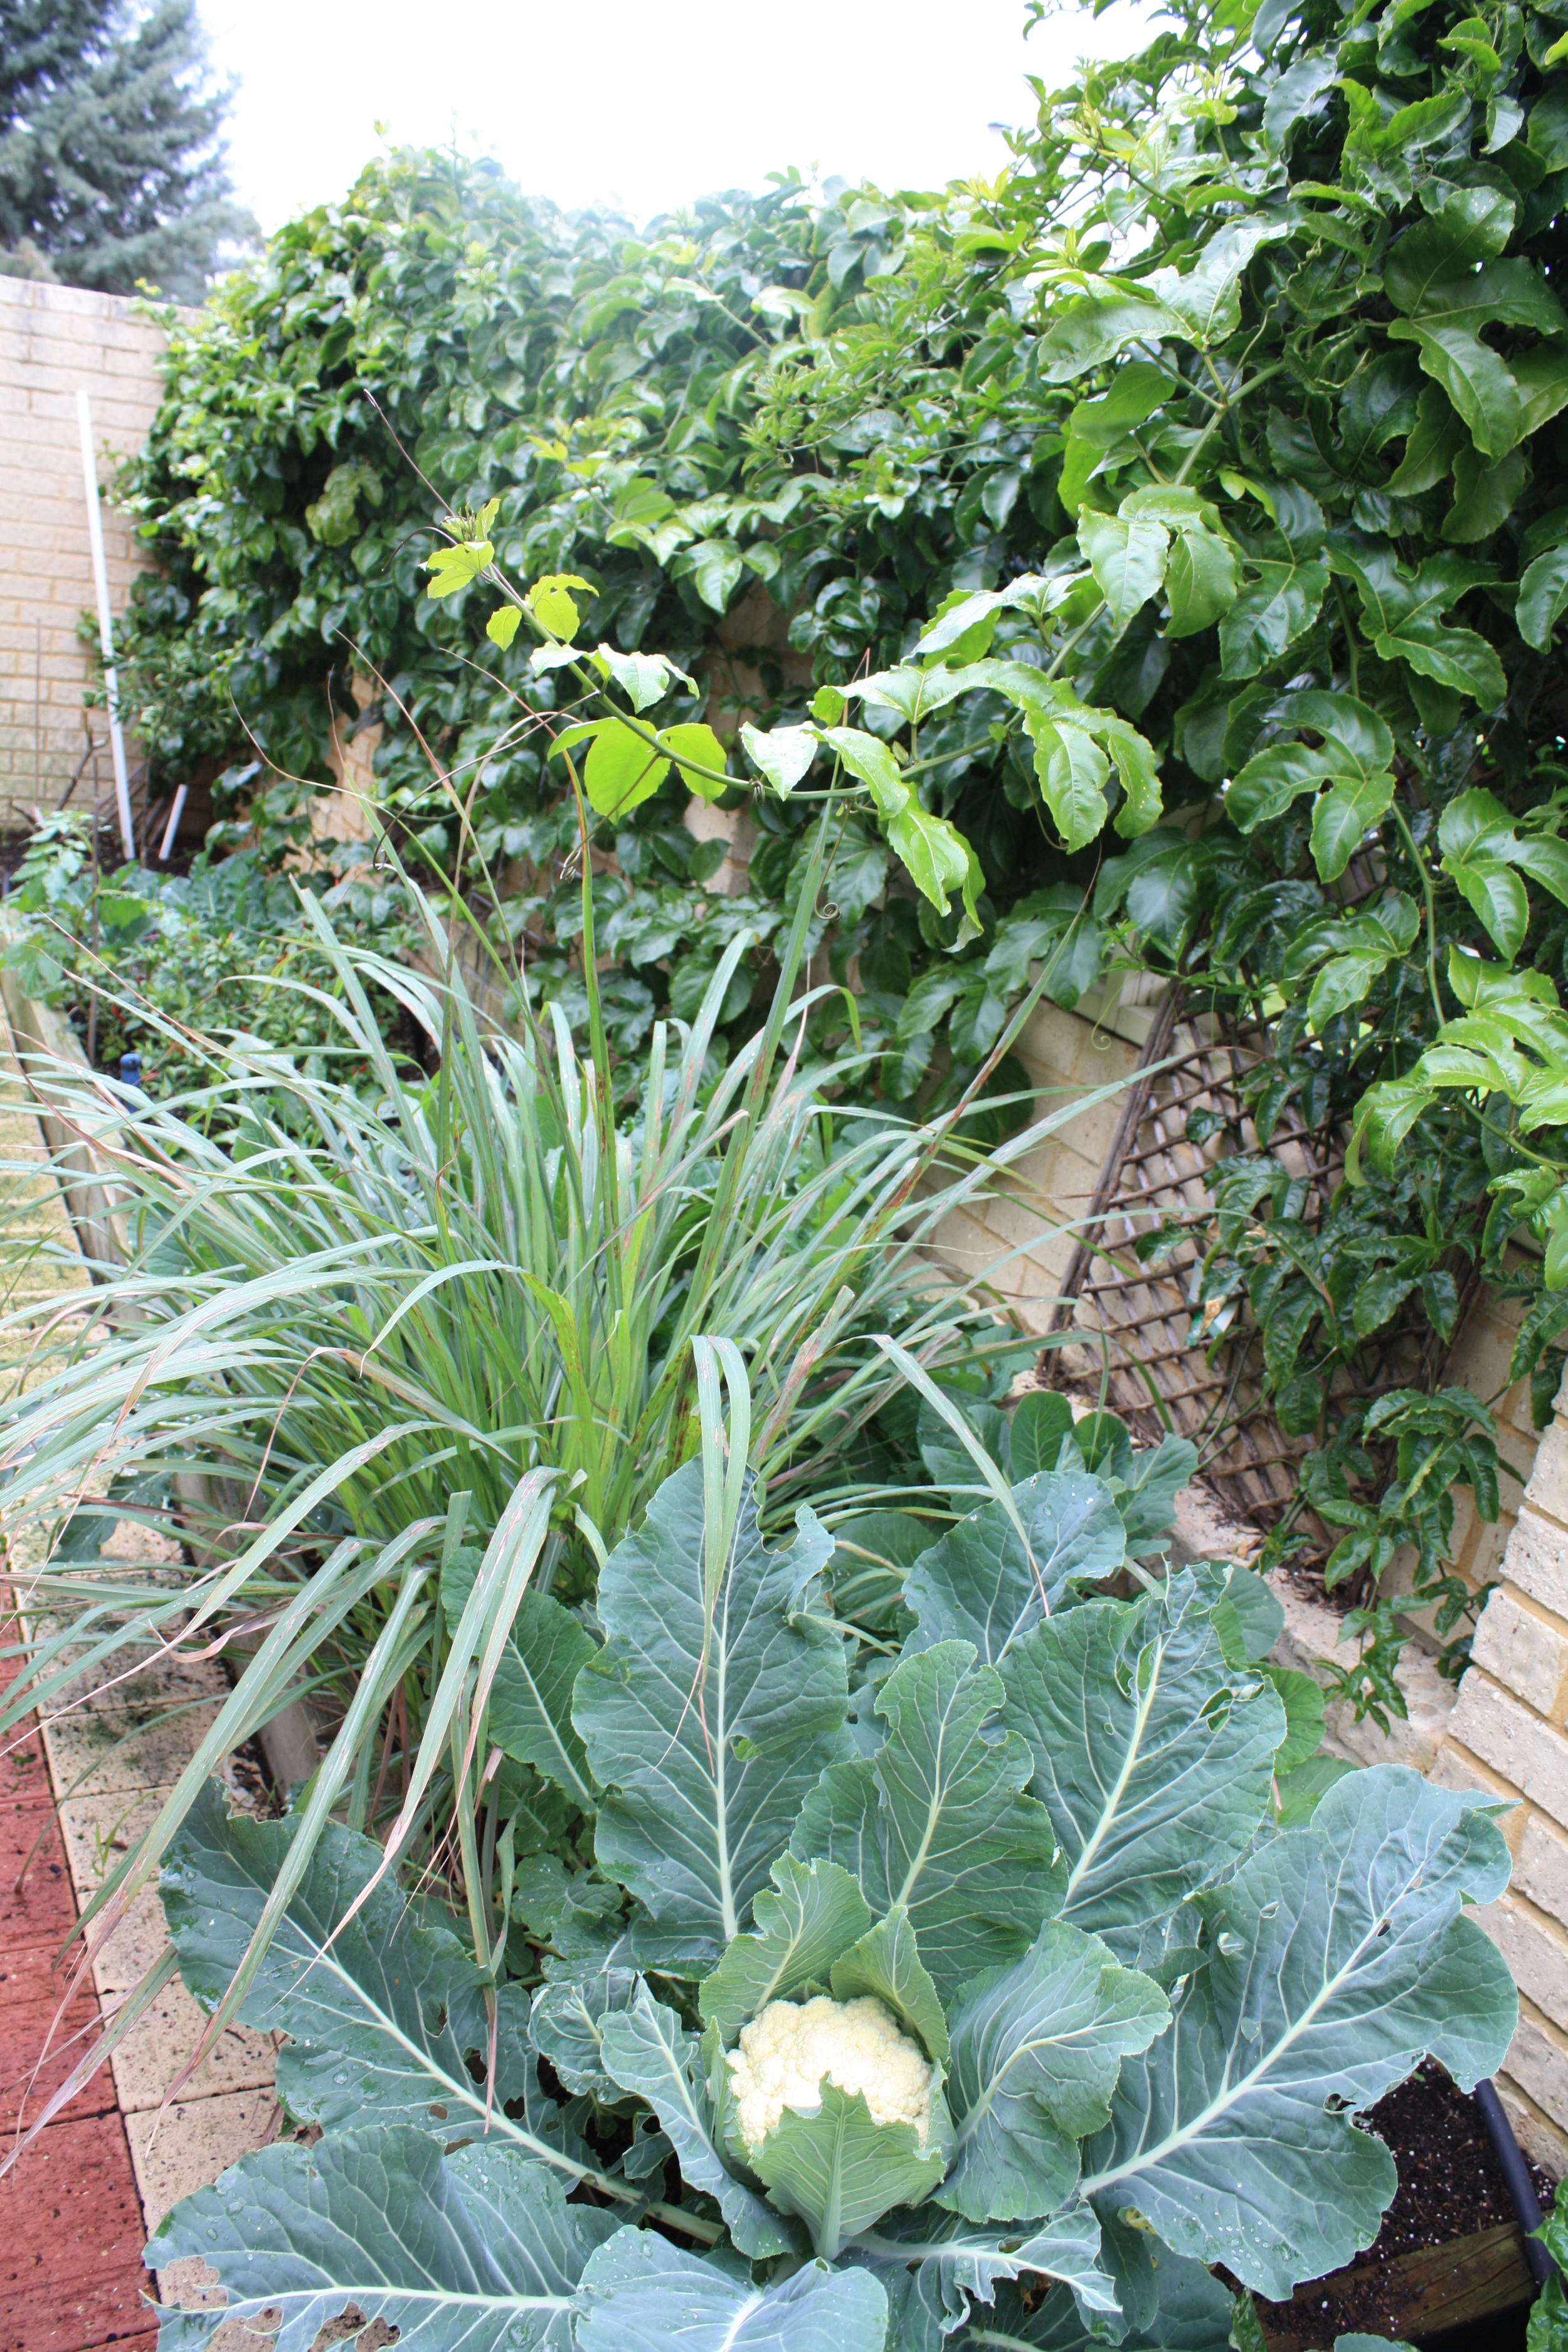 In this Dudley Park Garden the passionfruit and cauliflower are thriving.